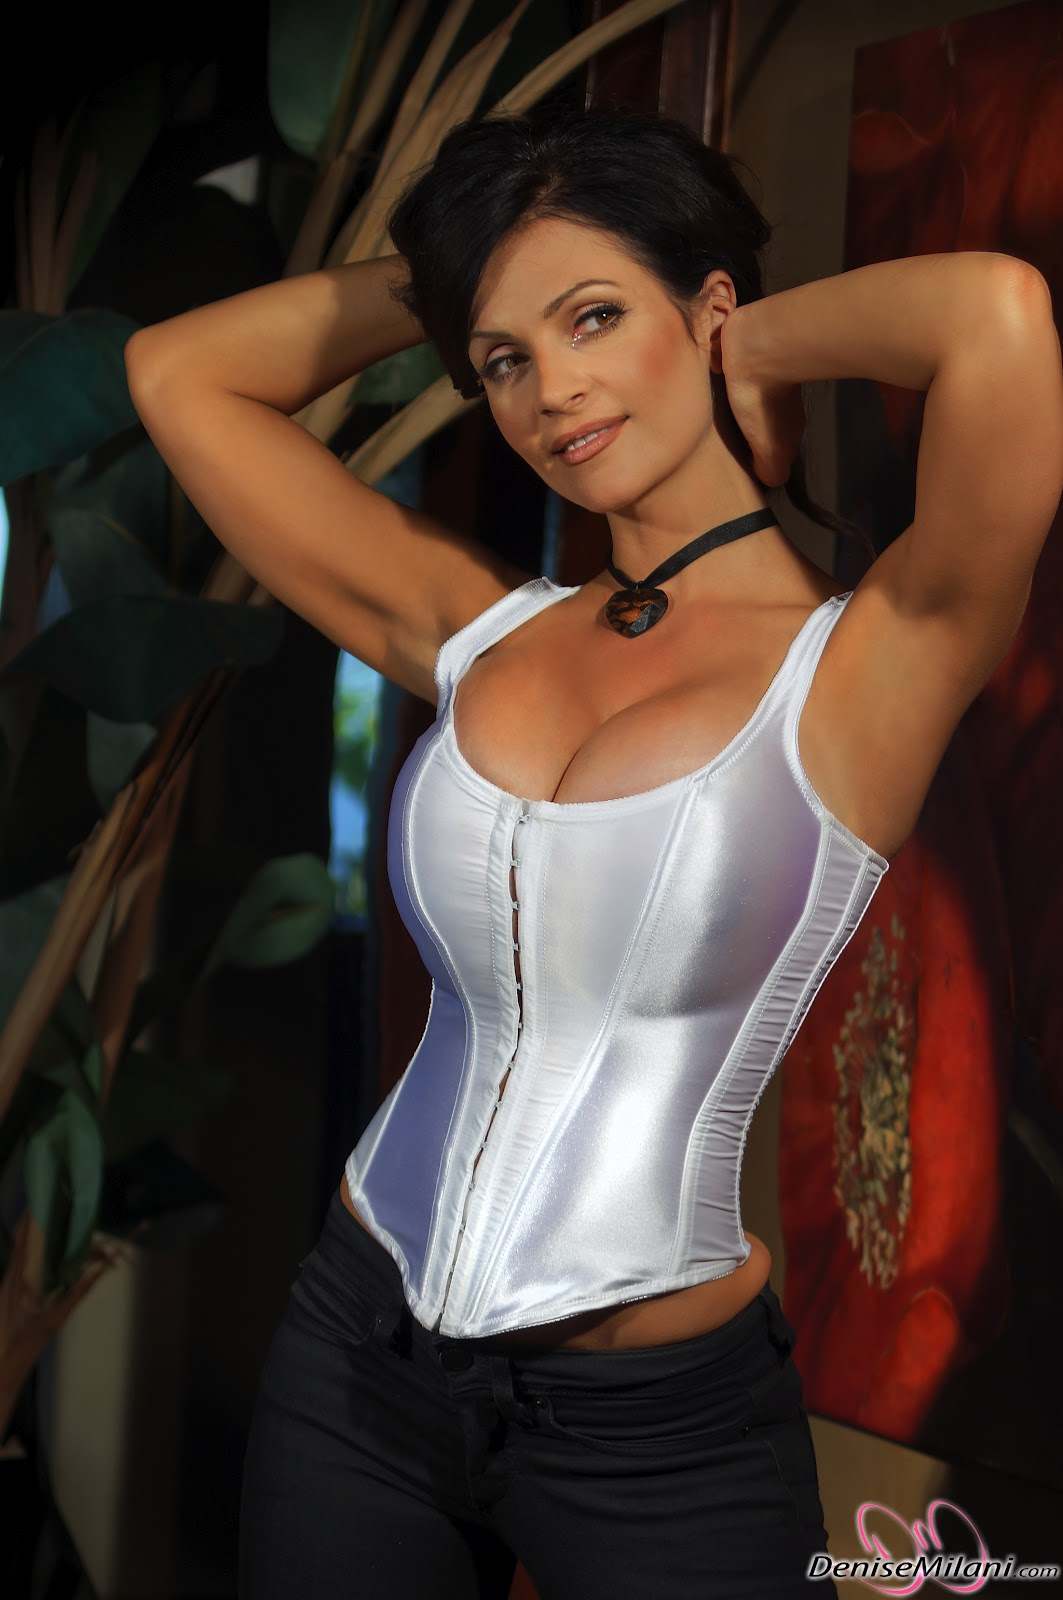 denise milani 39 s massive cleavage in sexy white top picx. Black Bedroom Furniture Sets. Home Design Ideas